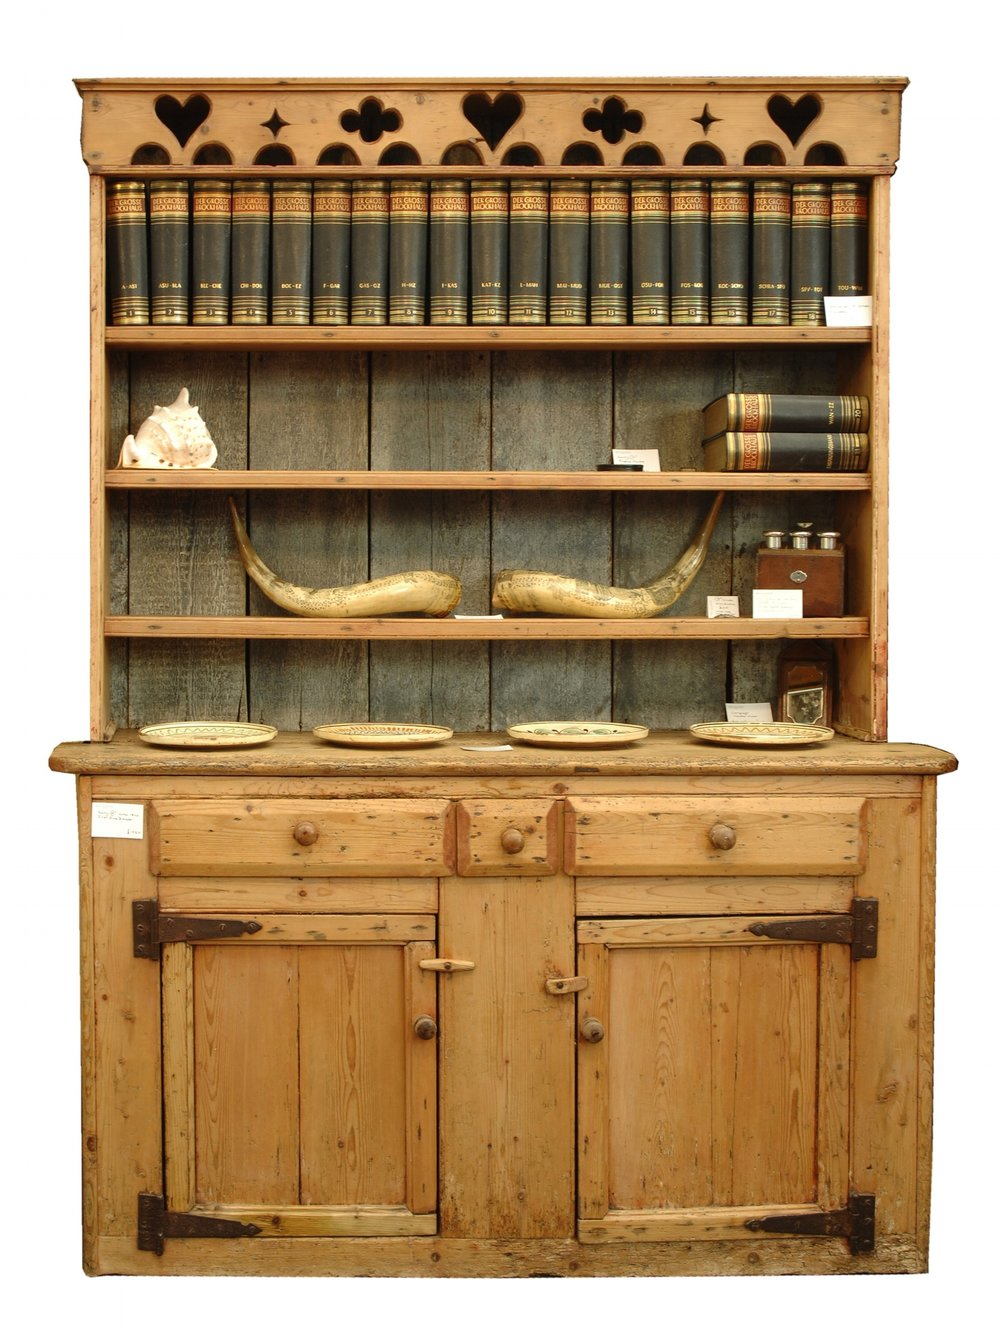 Molly & Maud's Place - A C19th Irish dresser in pine